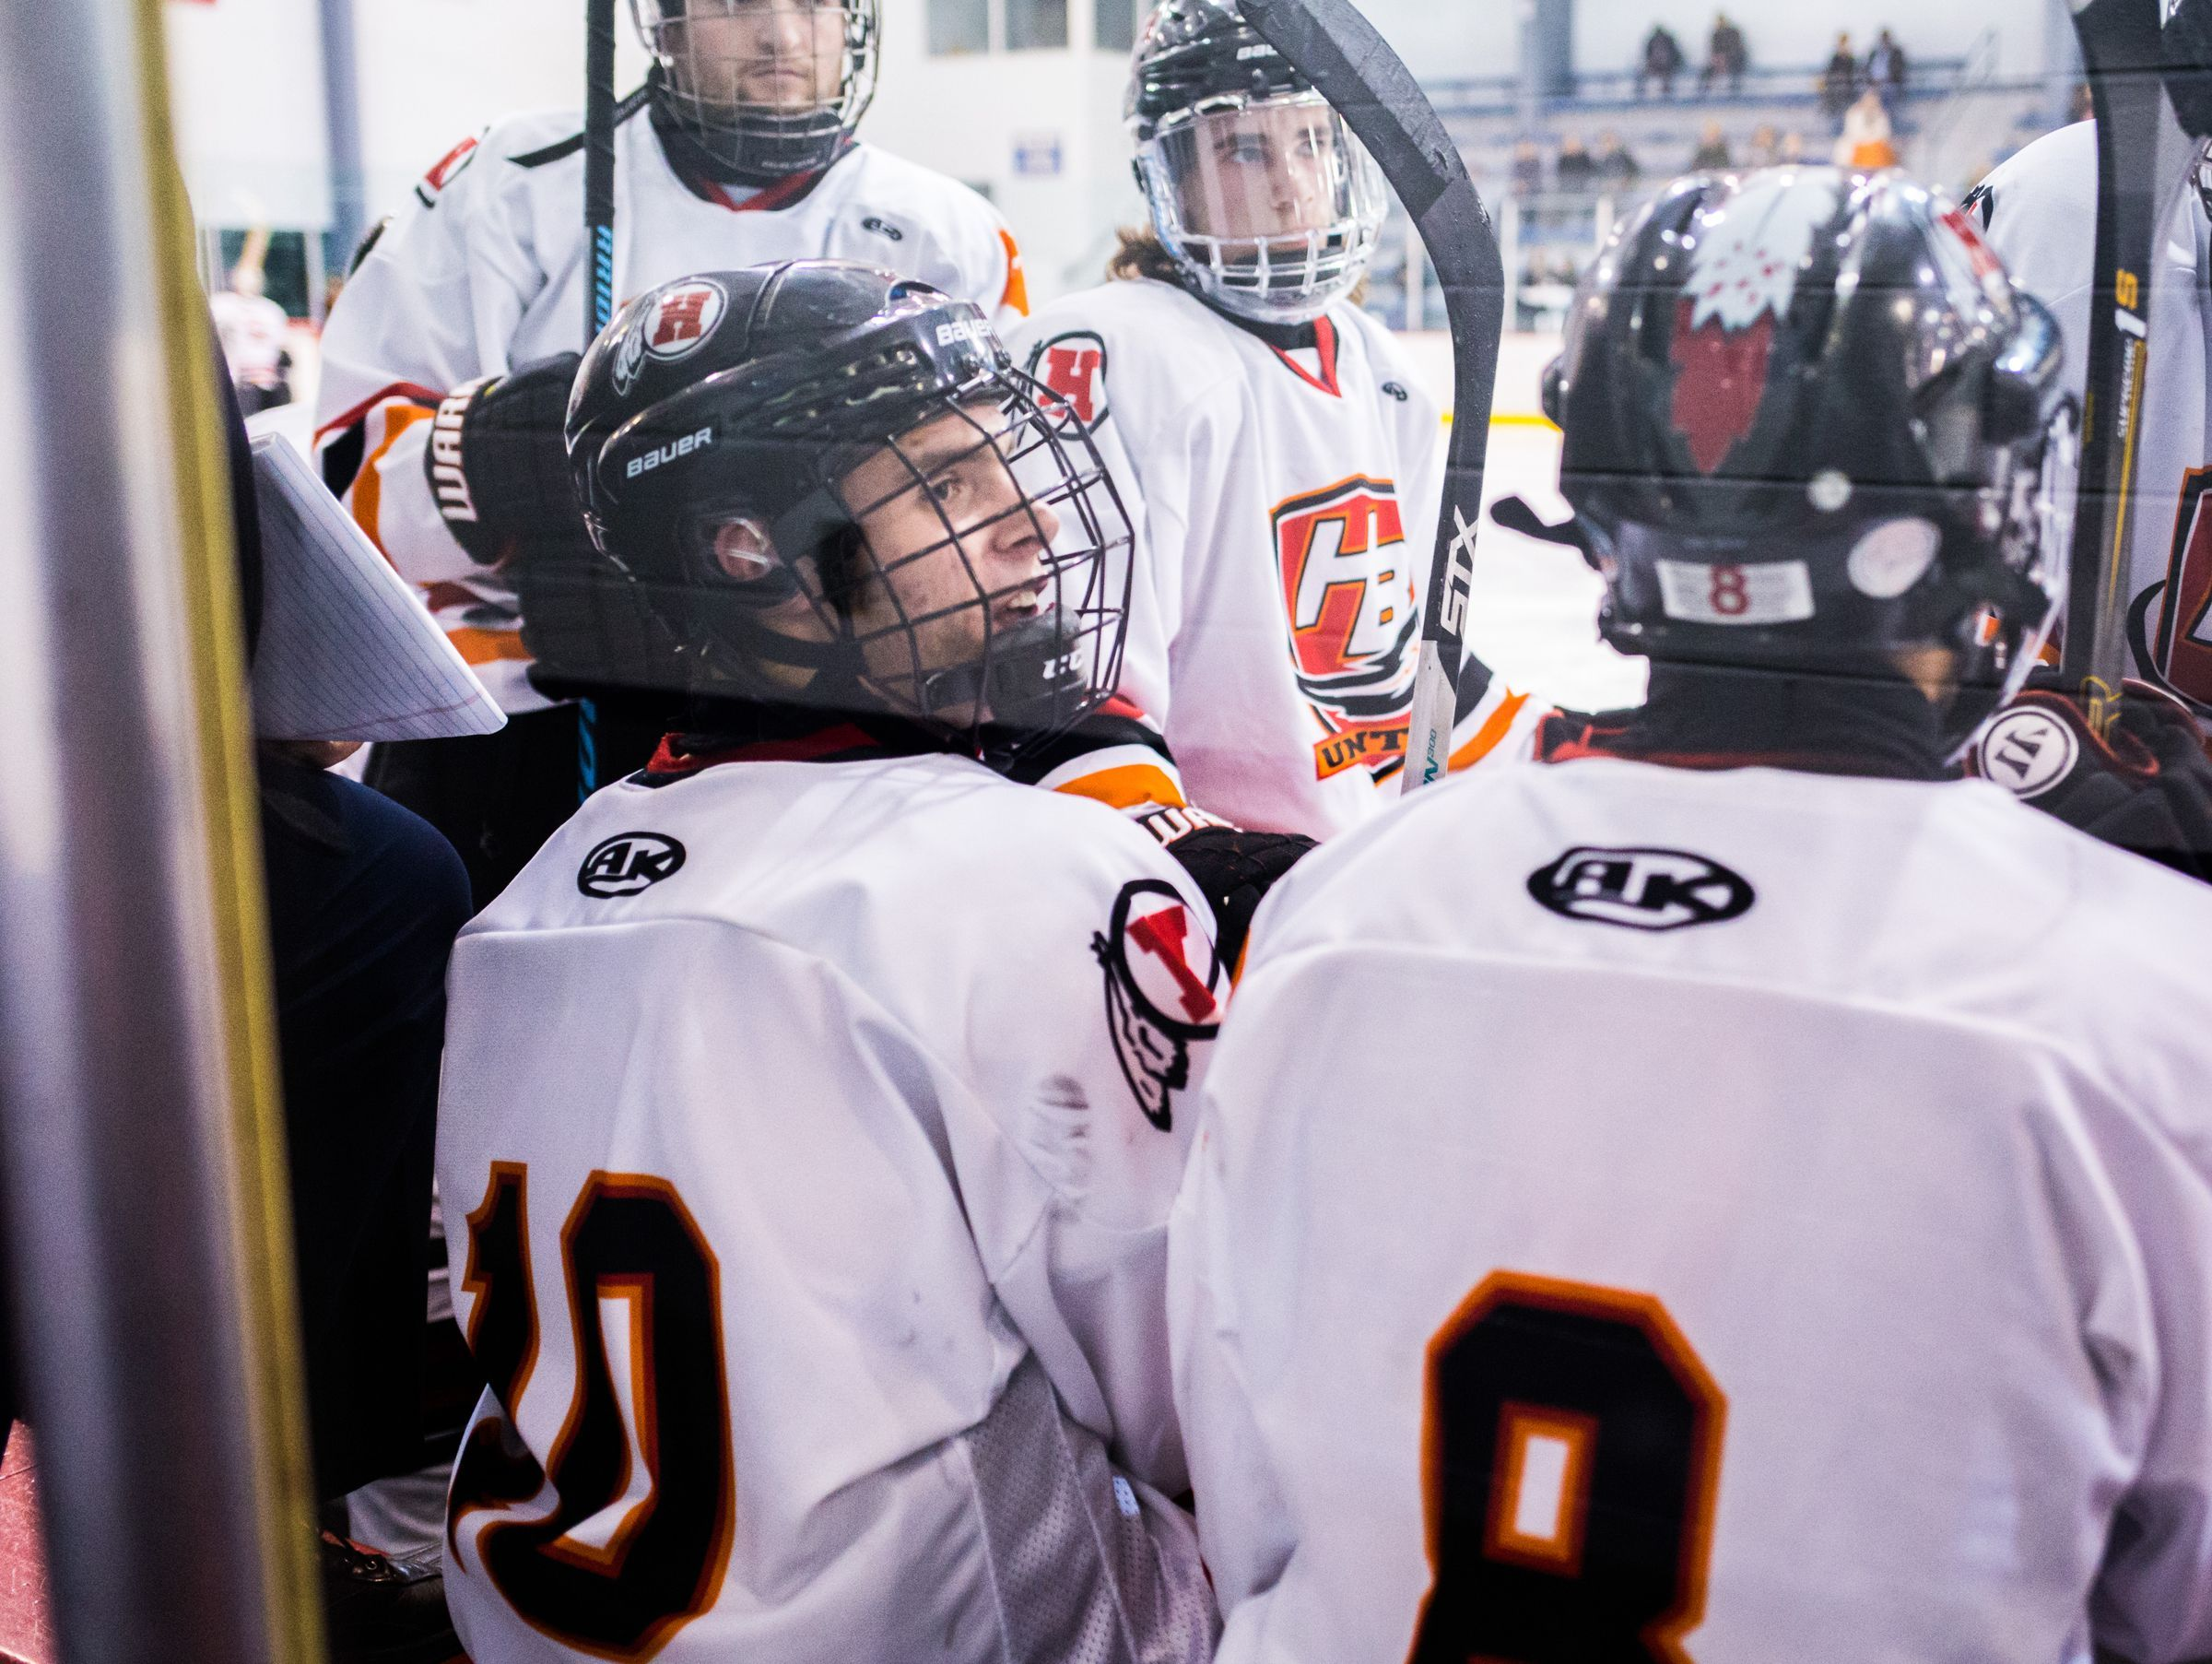 New Boston Huron's Andrew Miller (10) with his teammates near the start of the third period against Northville at Dearborn Ice Skating Center on Feb. 27, 2017.